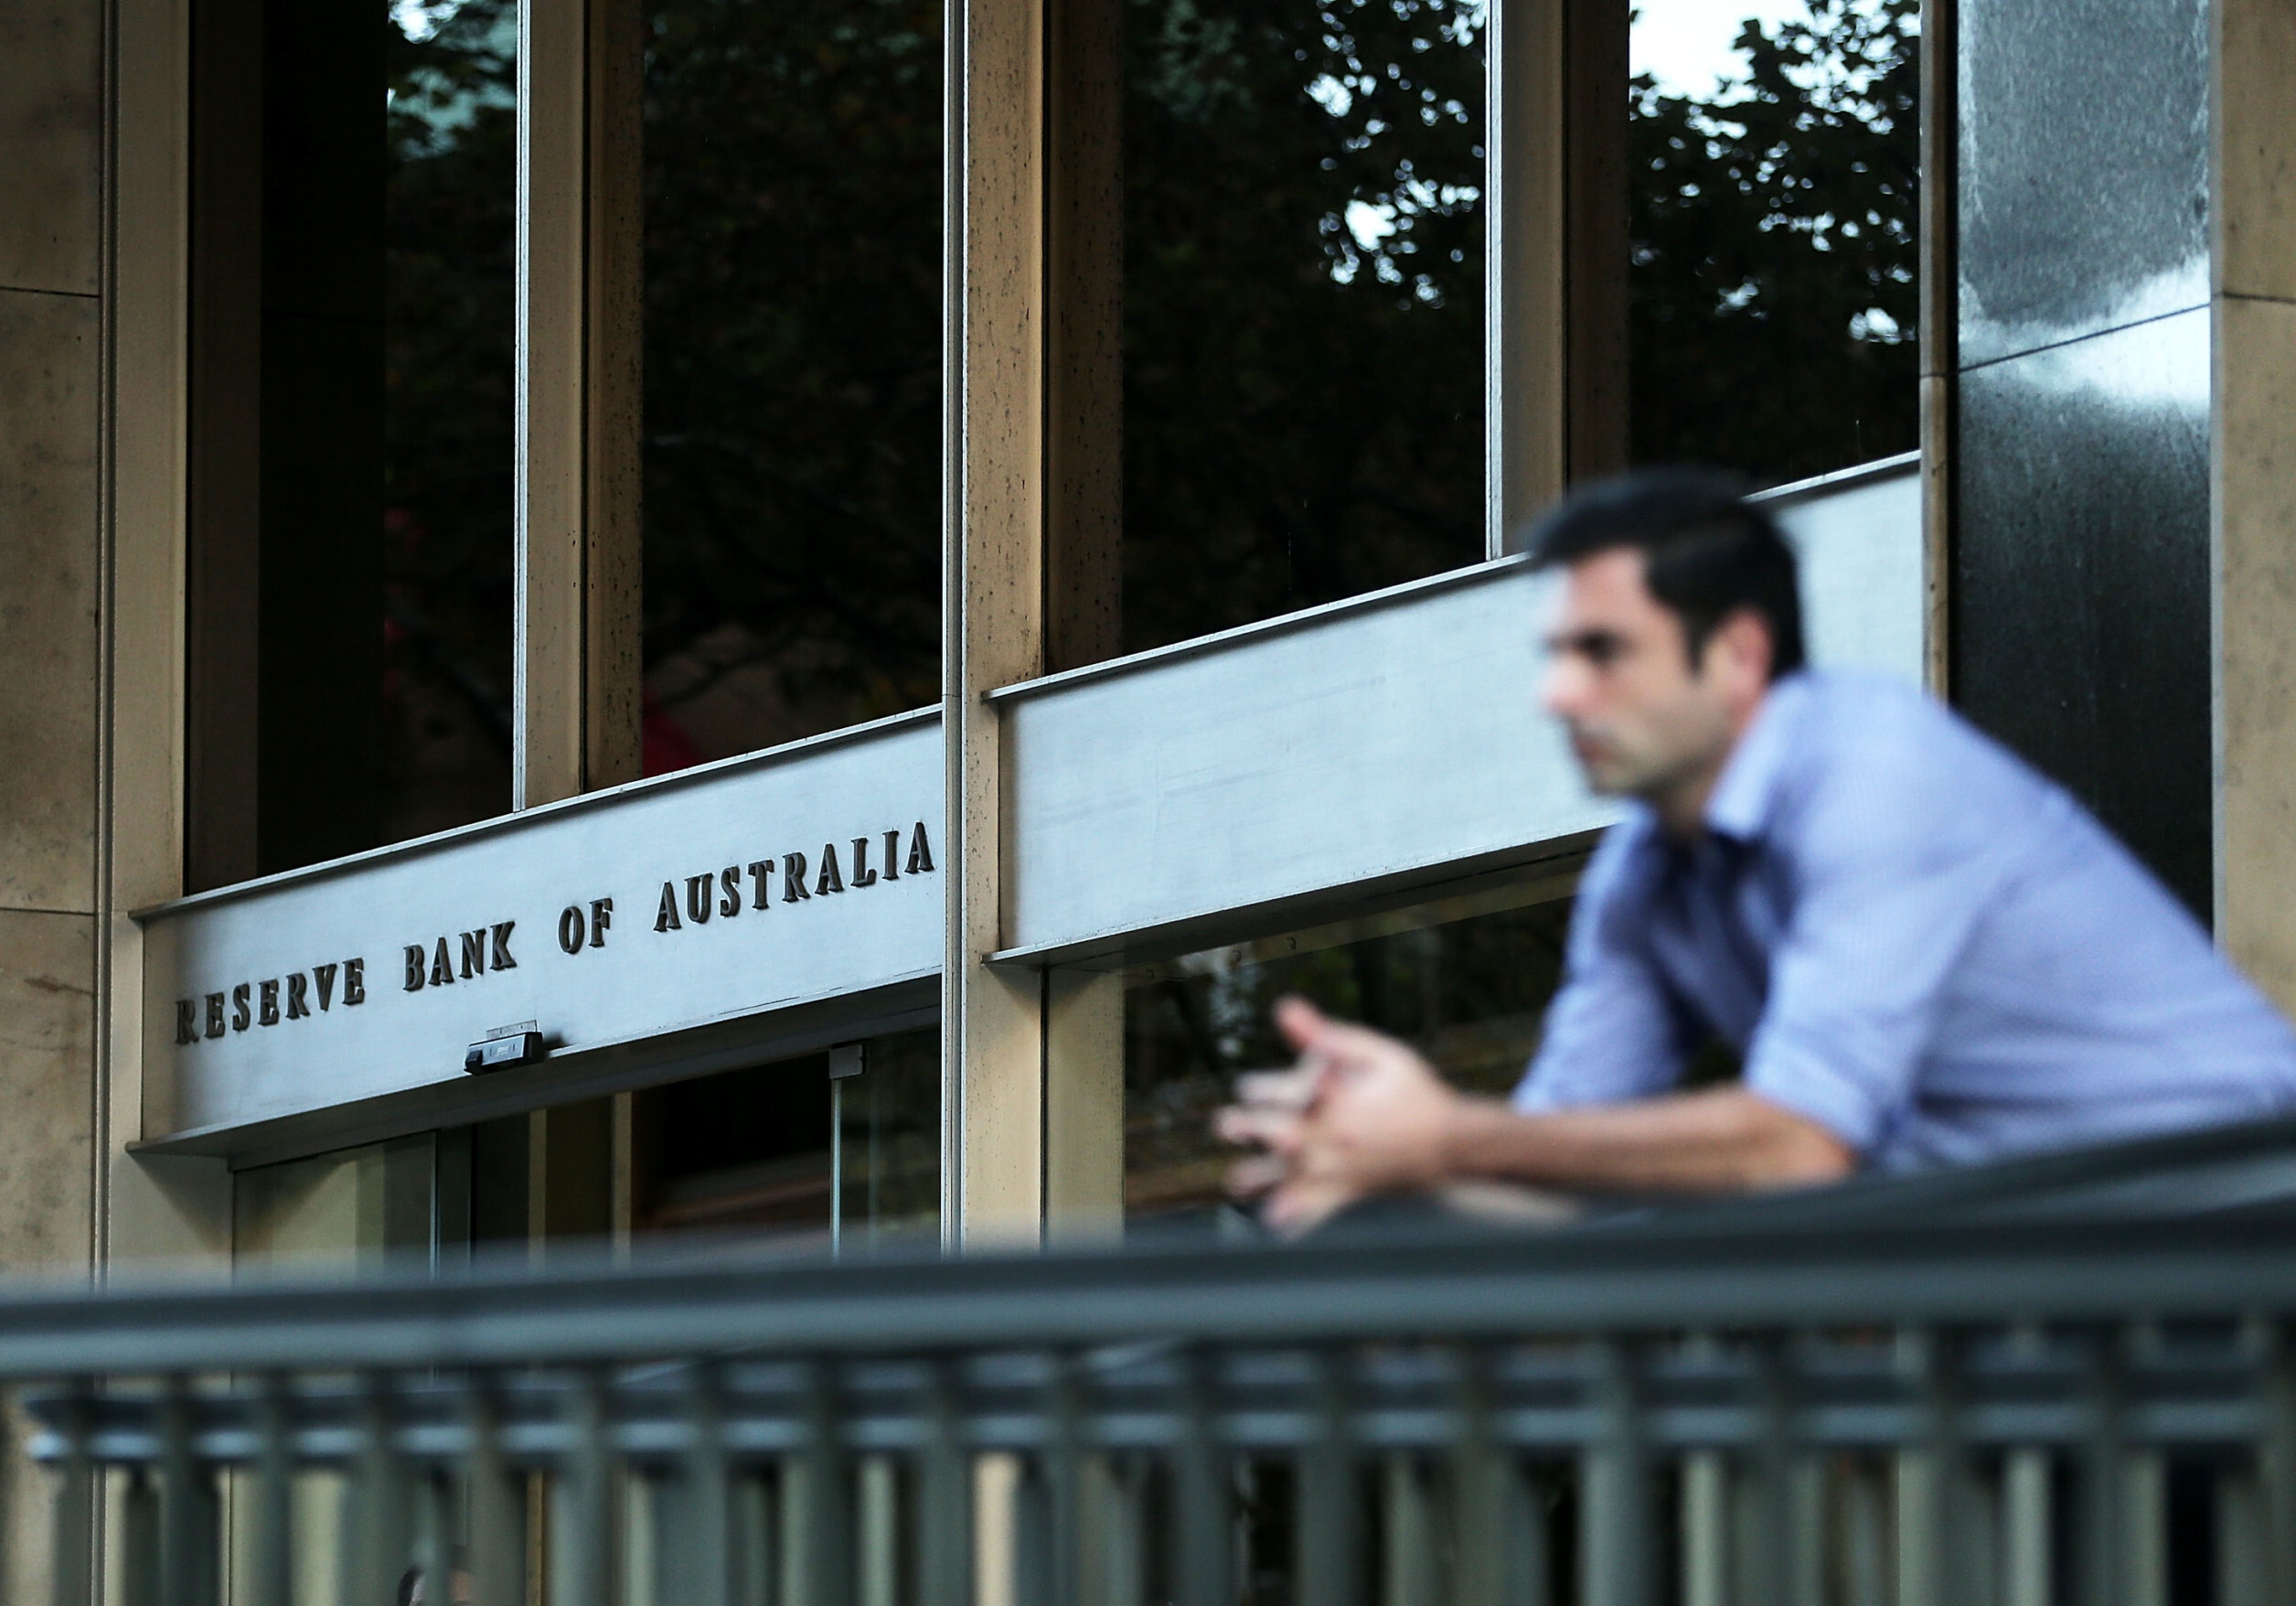 SYDNEY, AUSTRALIA - MAY 05:  A man looks on outside the Reserve Bank of Australia headquarters on May 5, 2015 in Sydney, Australia. Forecasters are predicting the Reserve Bank of Australia will cut interest rates for the second time this year in its upcoming May meeting. The cuts would come amidst fear of stoking the rising prices of housing in Australia.  (Photo by Mark Metcalfe/Getty Images)